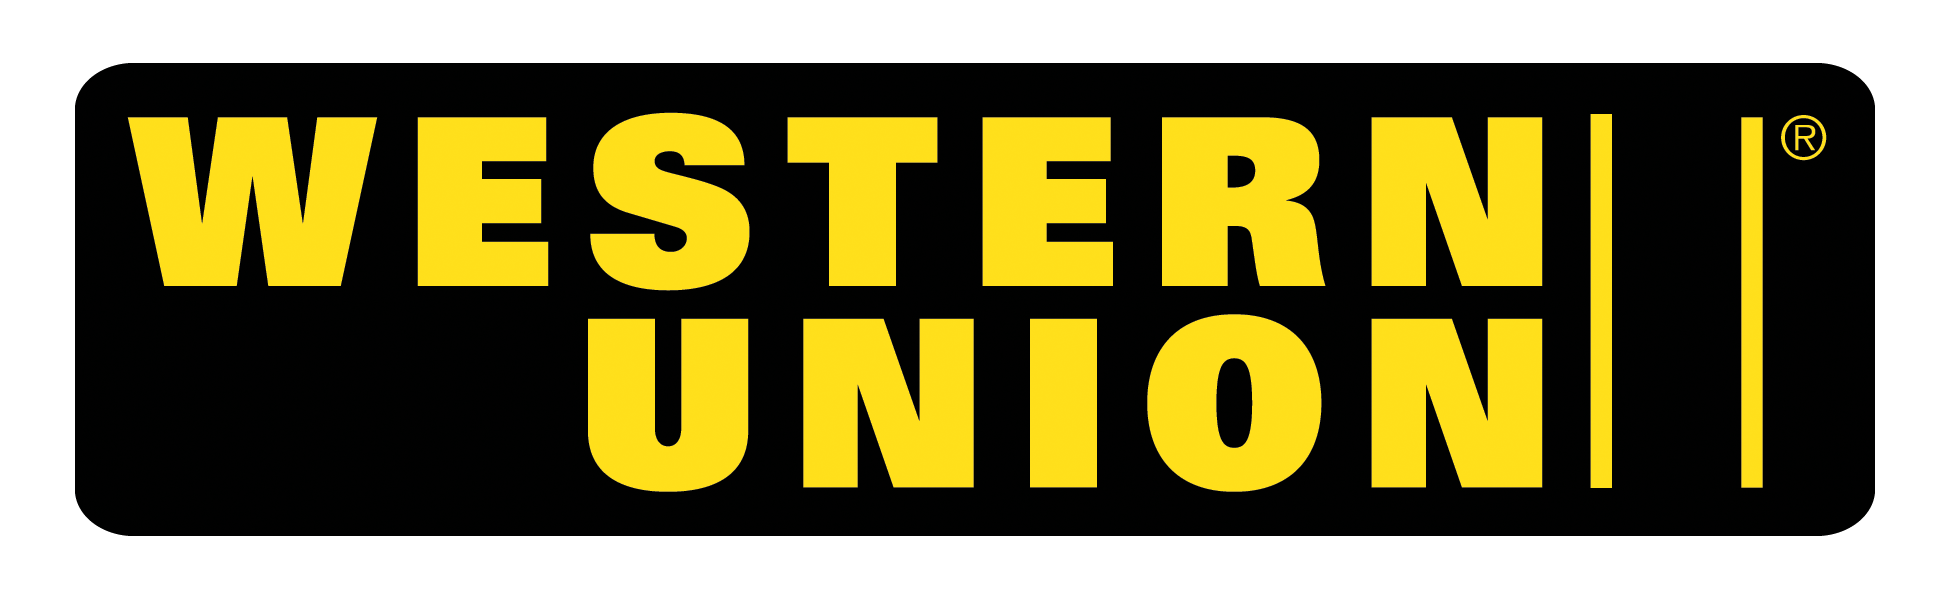 Western Union Expands Payment Suite with Western Unionr Small Business  Payments Targeting Small to Medium-Sized Business - Logo Western Union PNG